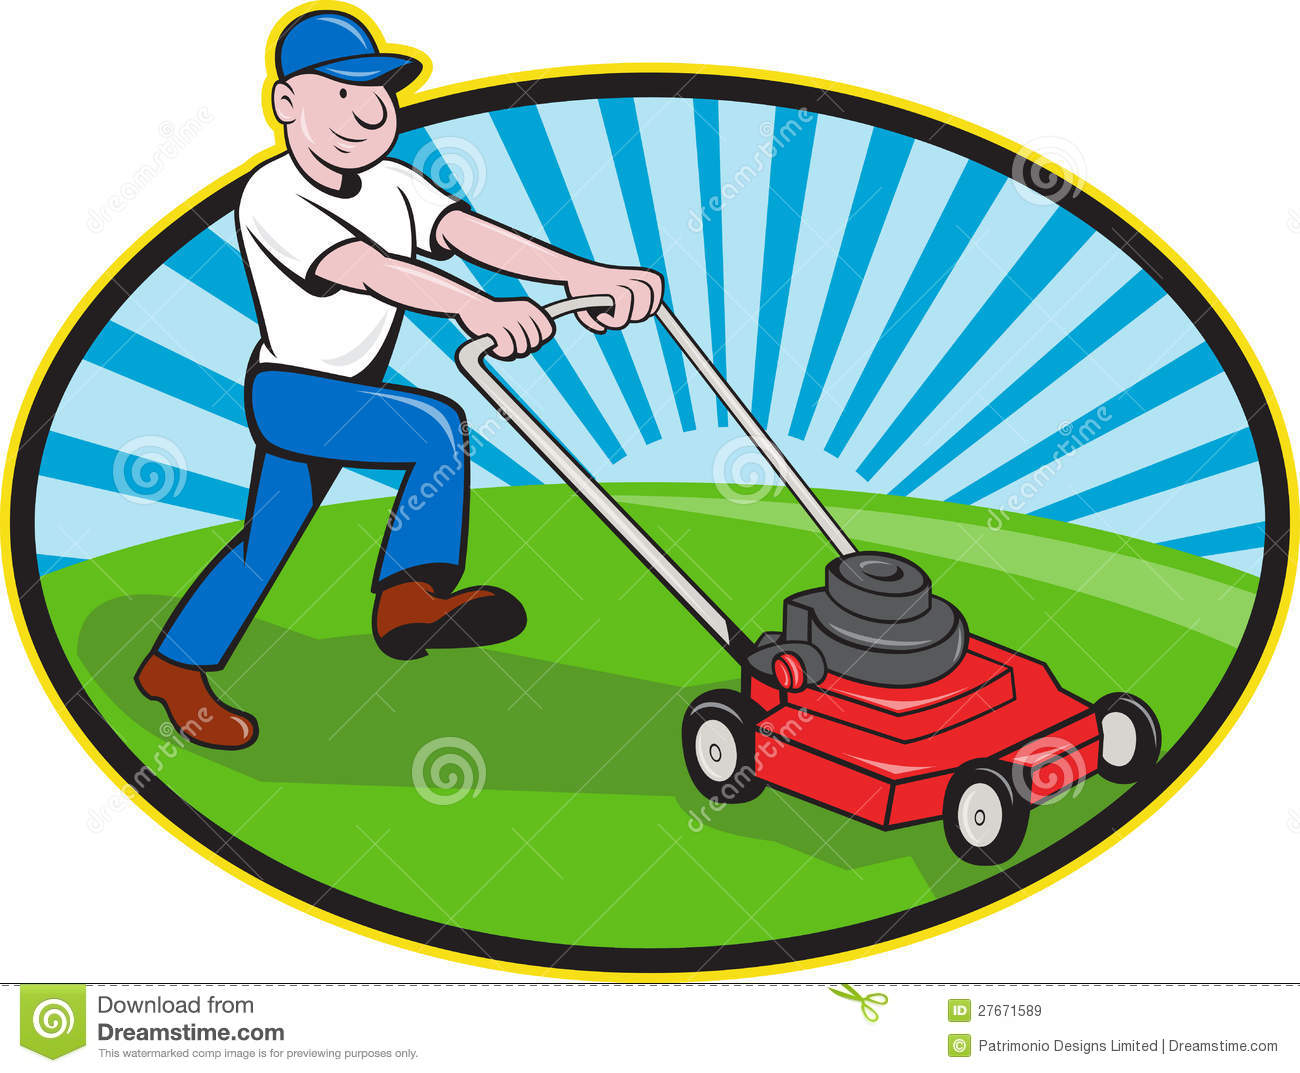 Lawn mower man gardener cartoon stock vector for Paysagiste logo